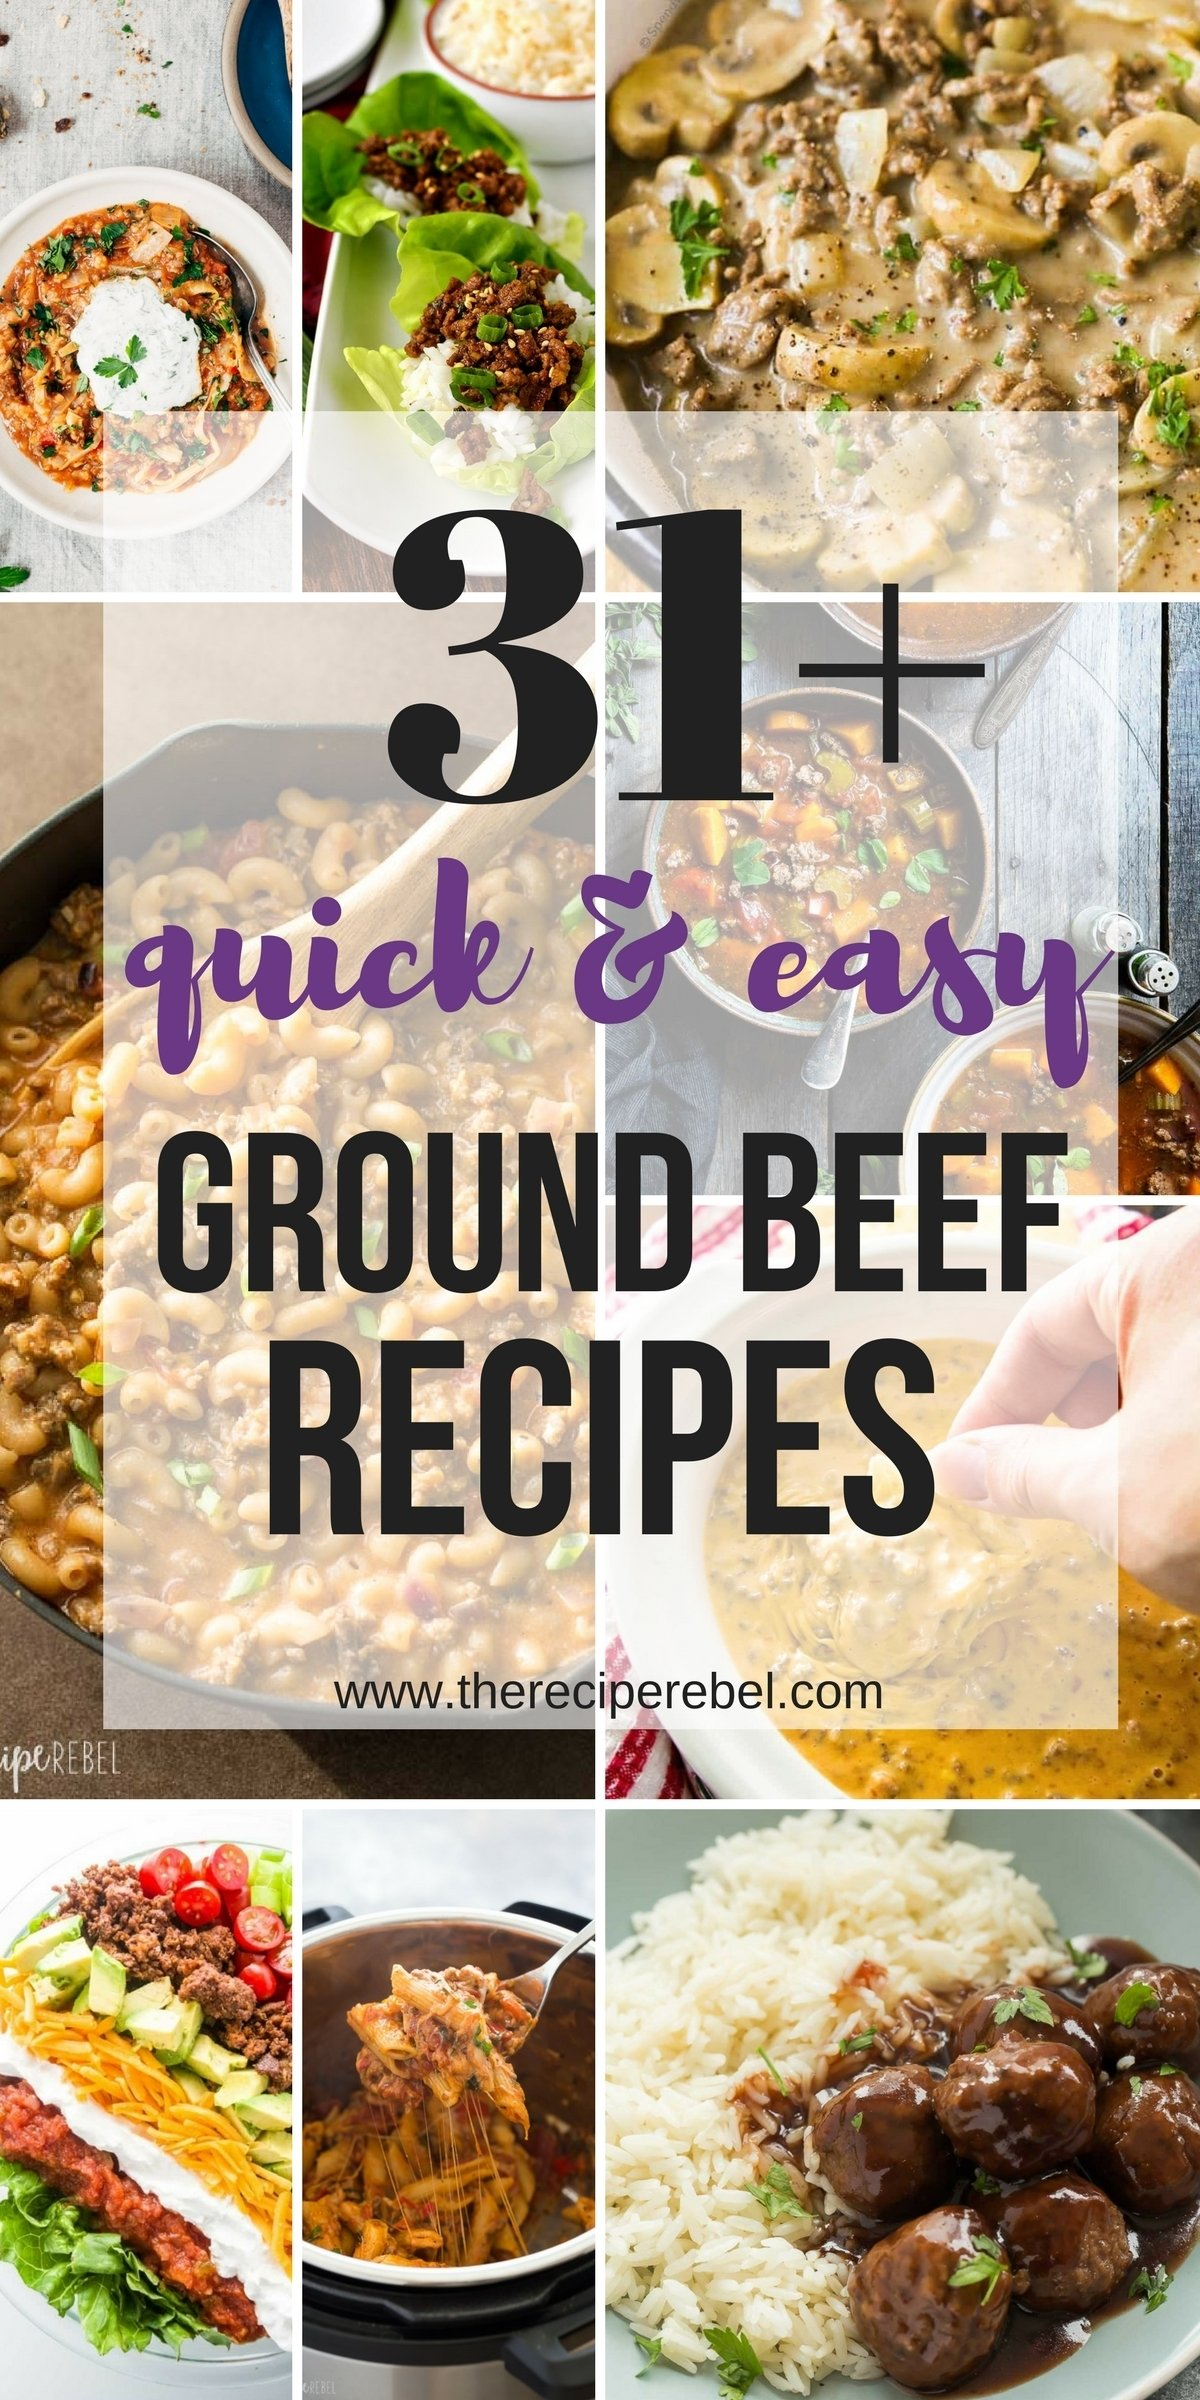 10 Stylish Quick Dinner Ideas With Ground Beef 31 quick ground beef recipes easy family friendly dinner ideas 2020